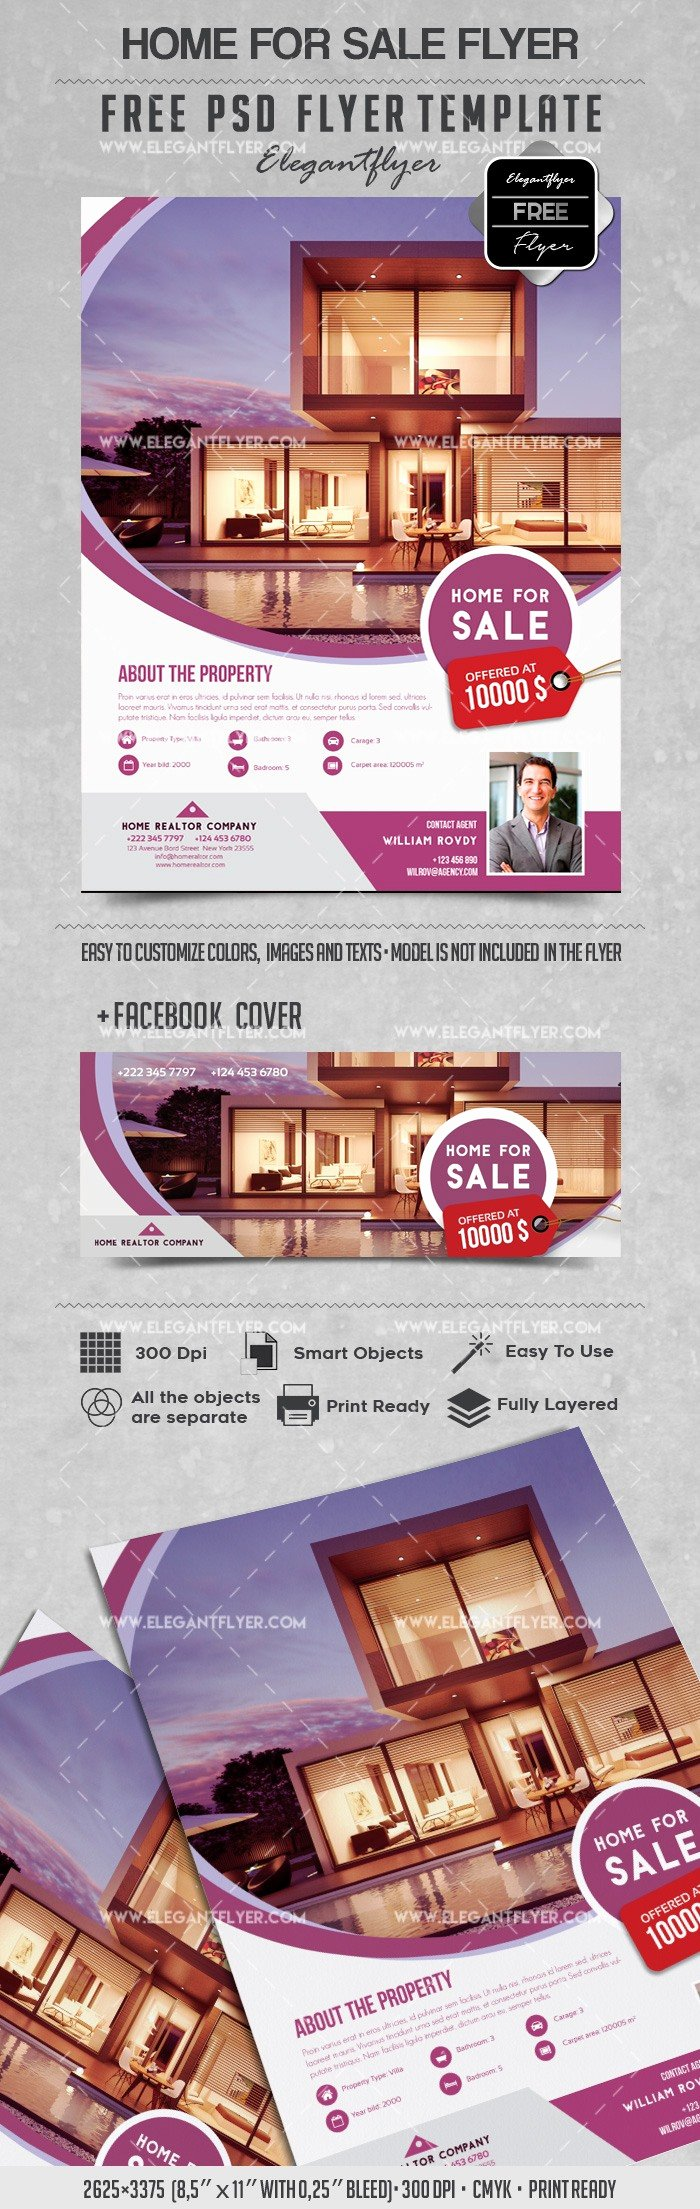 Home for Sale Template Beautiful Home for Sale – Flyer Psd Template – by Elegantflyer